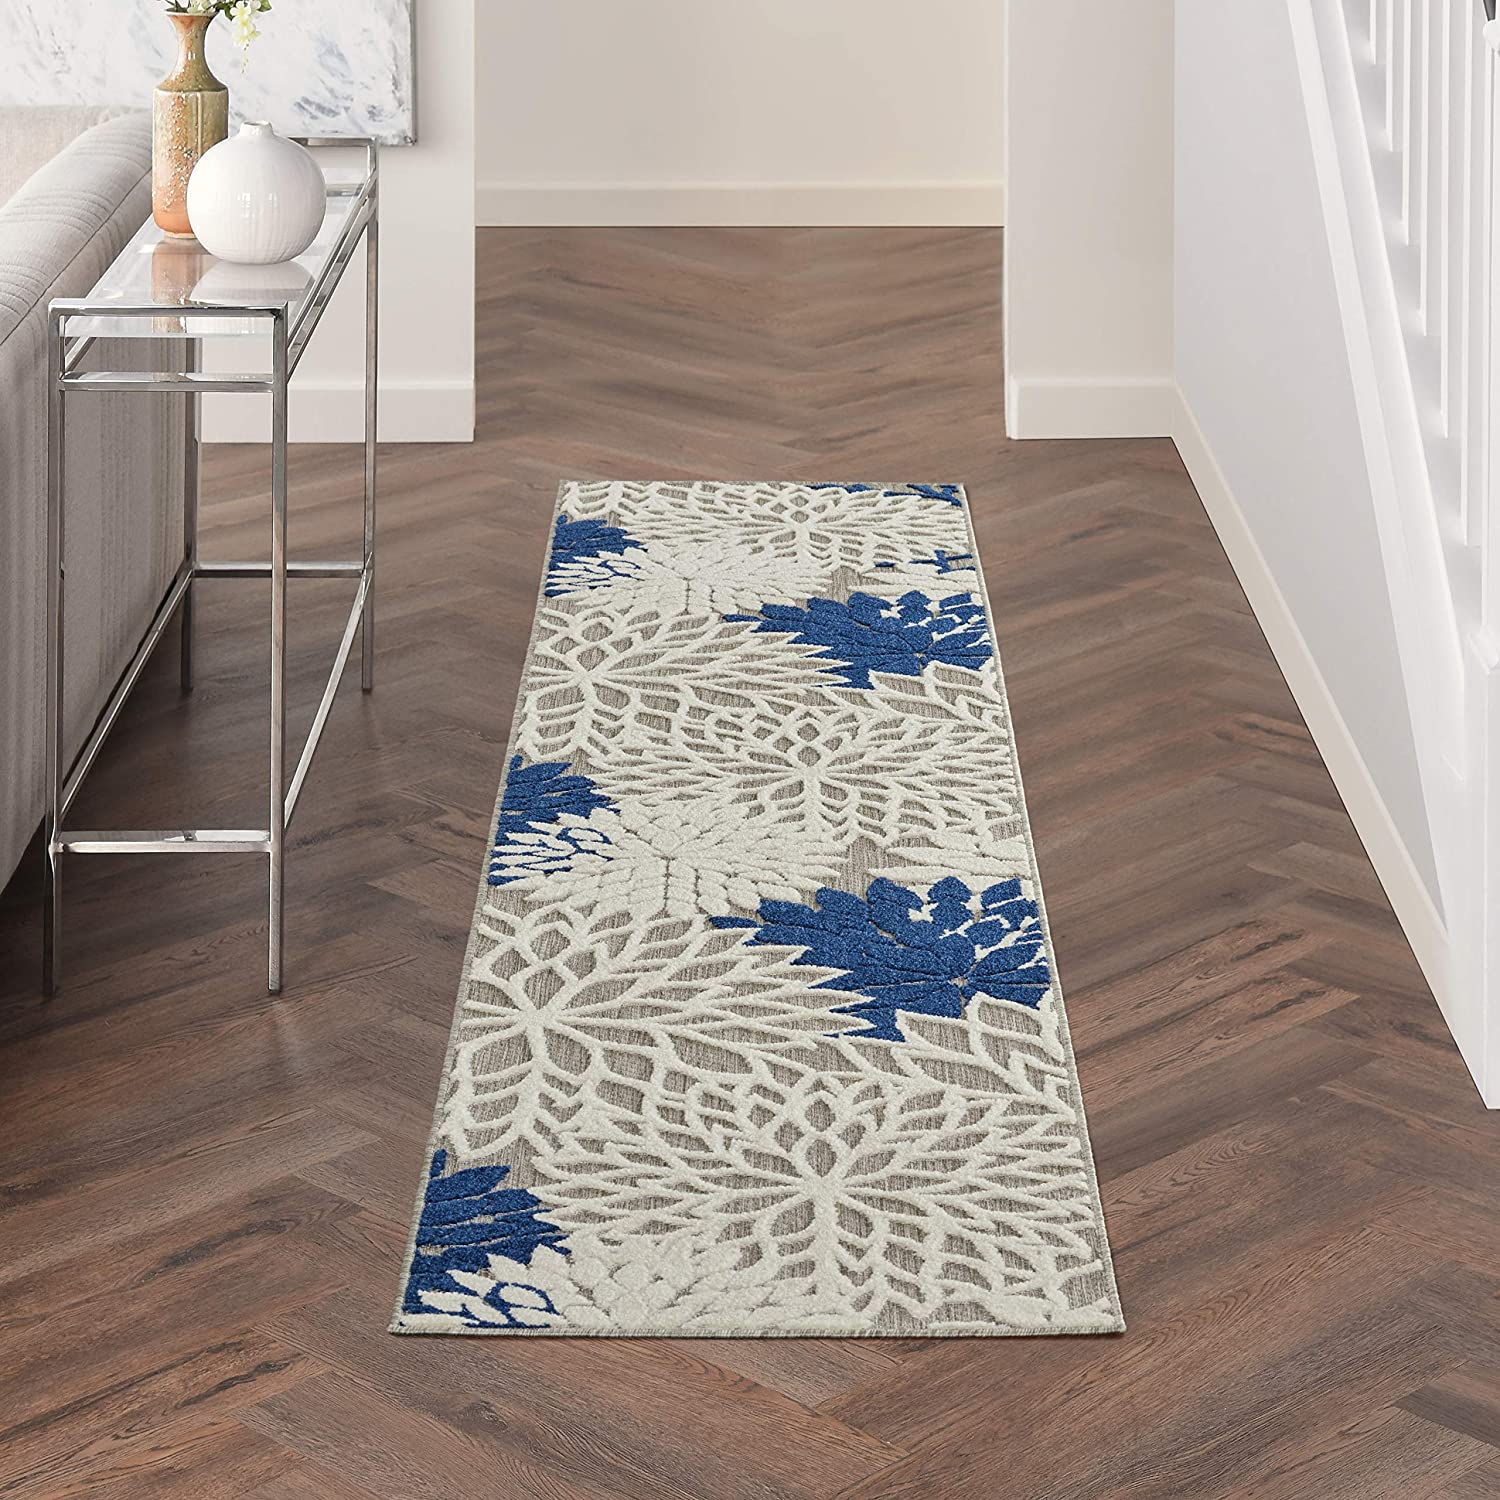 Limited price sale Nourison Aloha Indoor Outdoor Floral Ivory Rug x Area Navy 2' quality assurance 6'